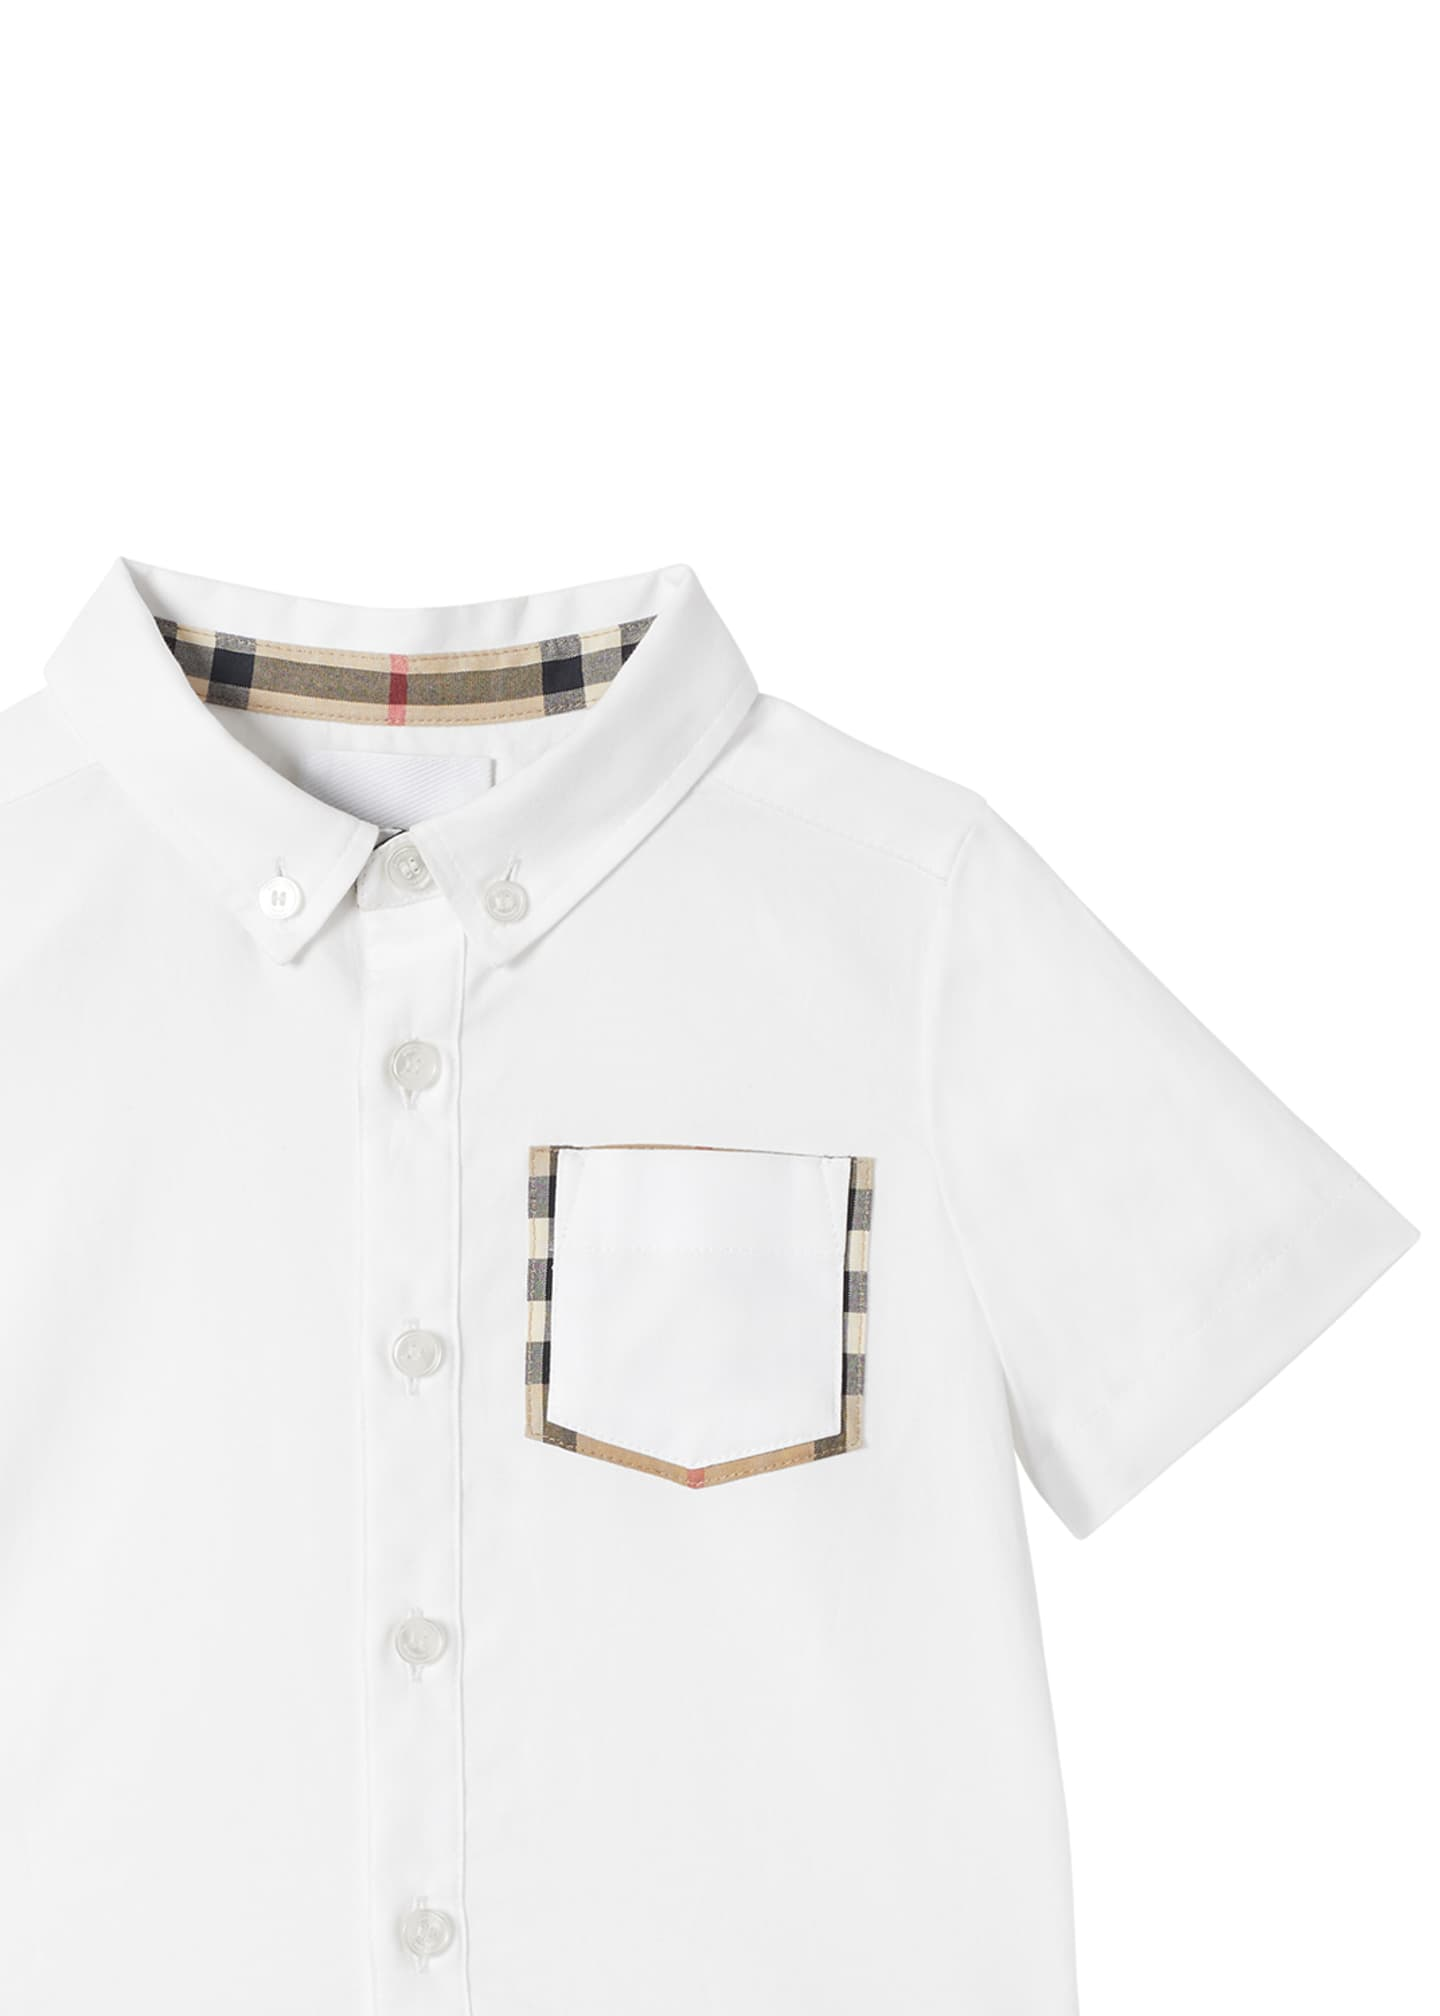 Image 4 of 4: Boy's Harry Button Front Shirt w/ Check Trim Pocket, Size 6M-2